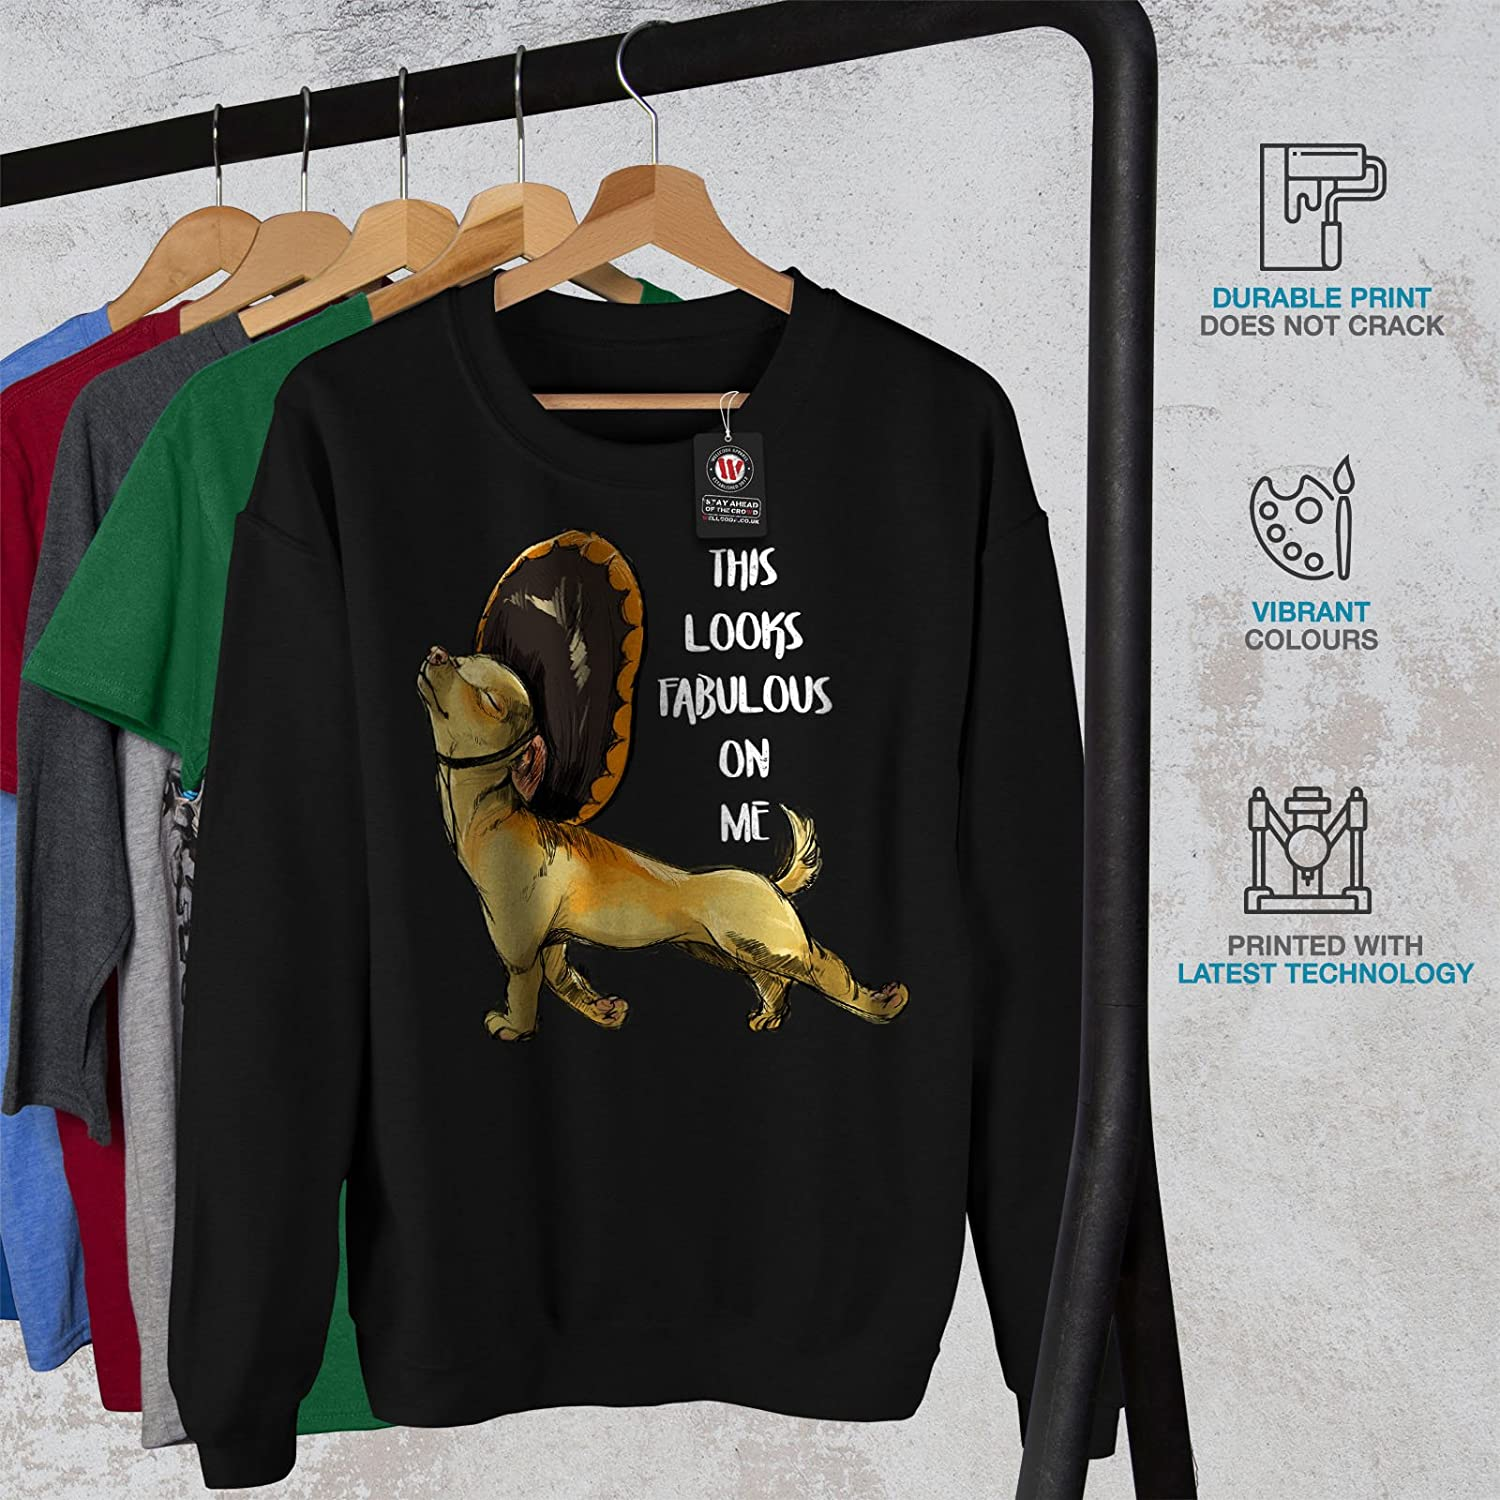 wellcoda Fabulous Dog Mens Sweatshirt Funny Slogan Casual Jumper